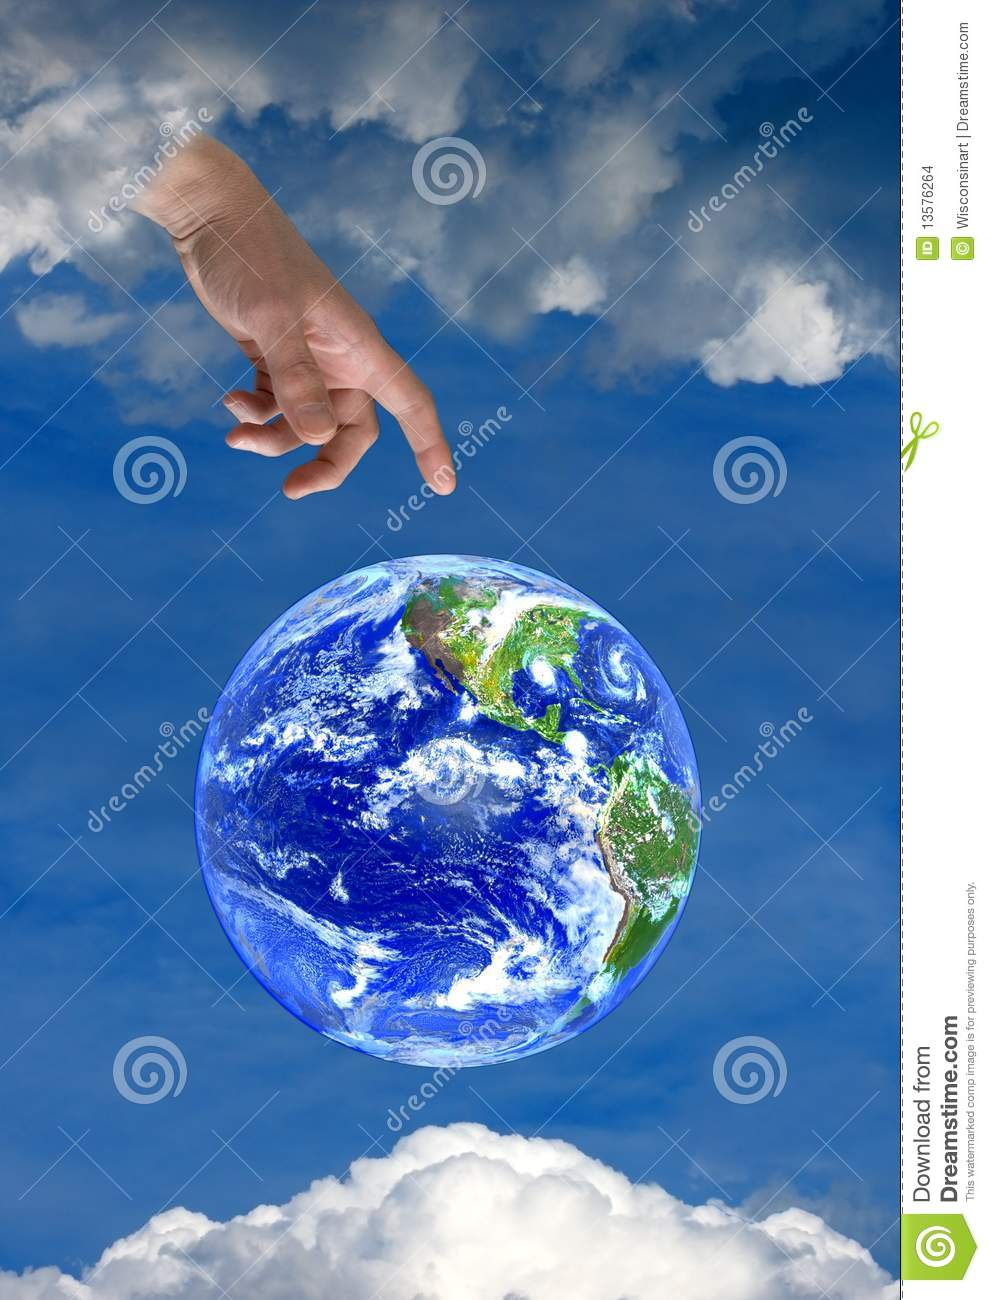 God Faith Religion Hope Peace Heaven Earth Stock Images   Image